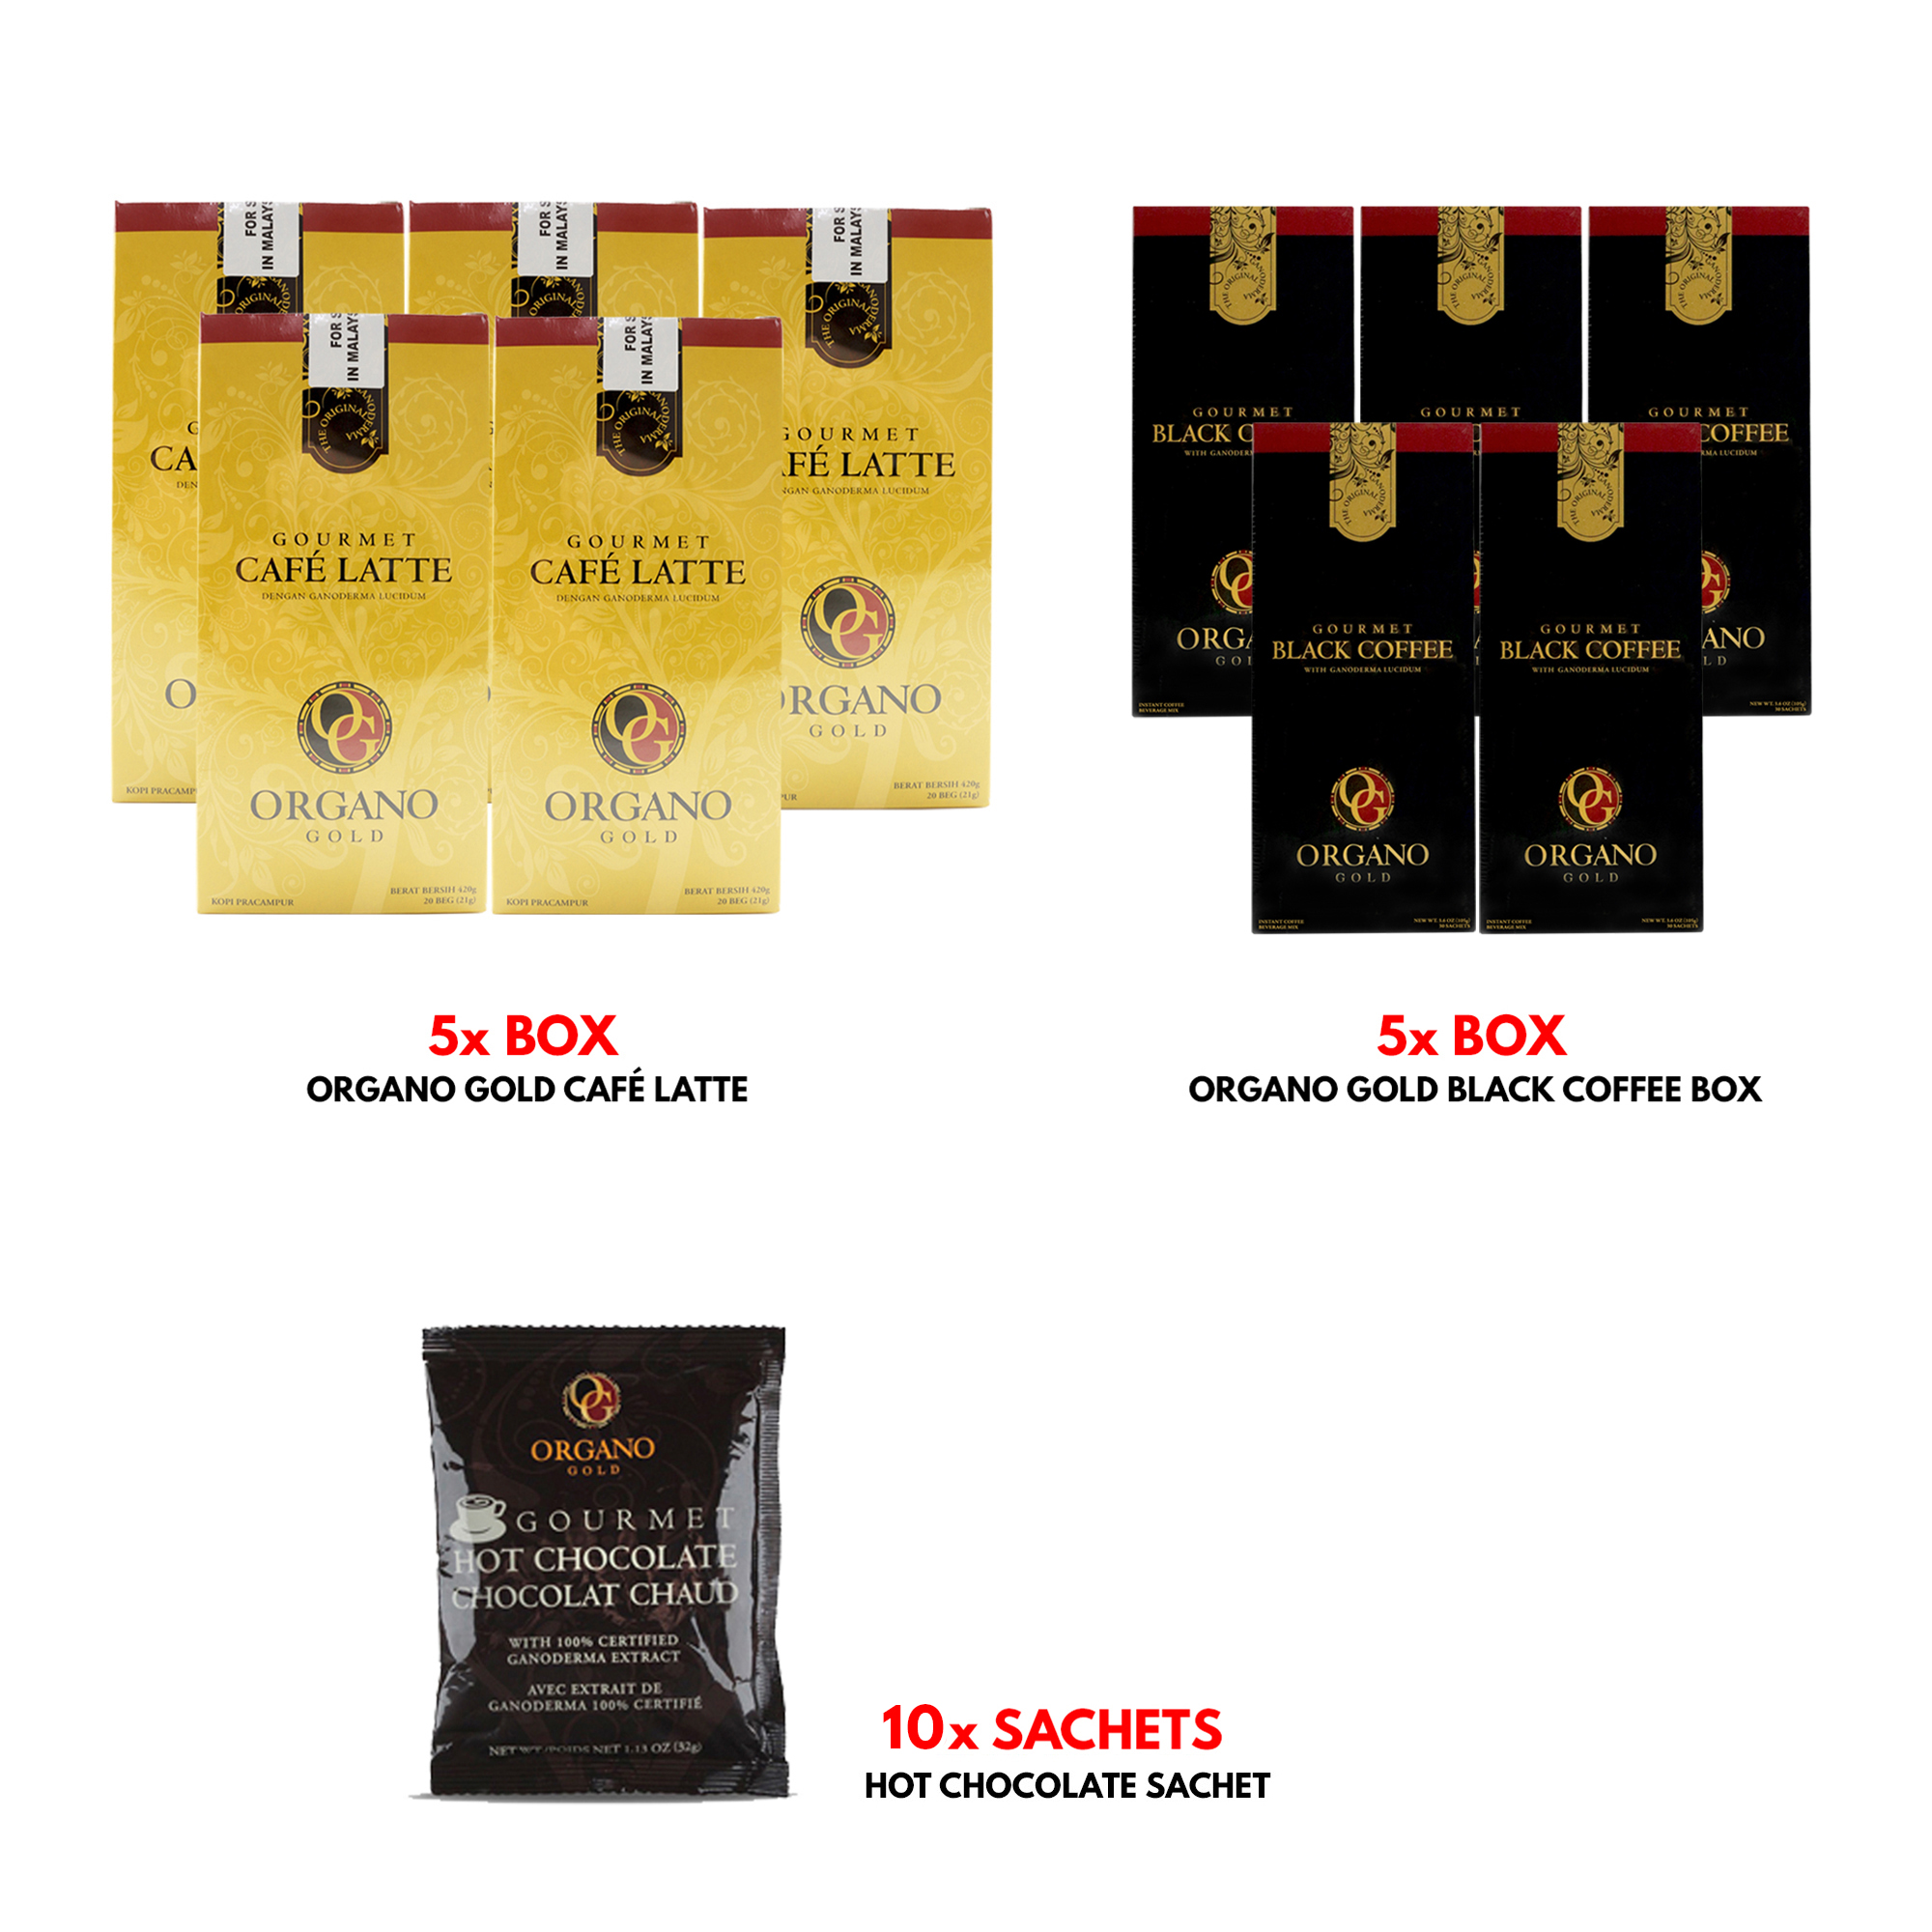 Organo Gold Cafe Latte Gourmet Coffee 5 Boxes + Organo